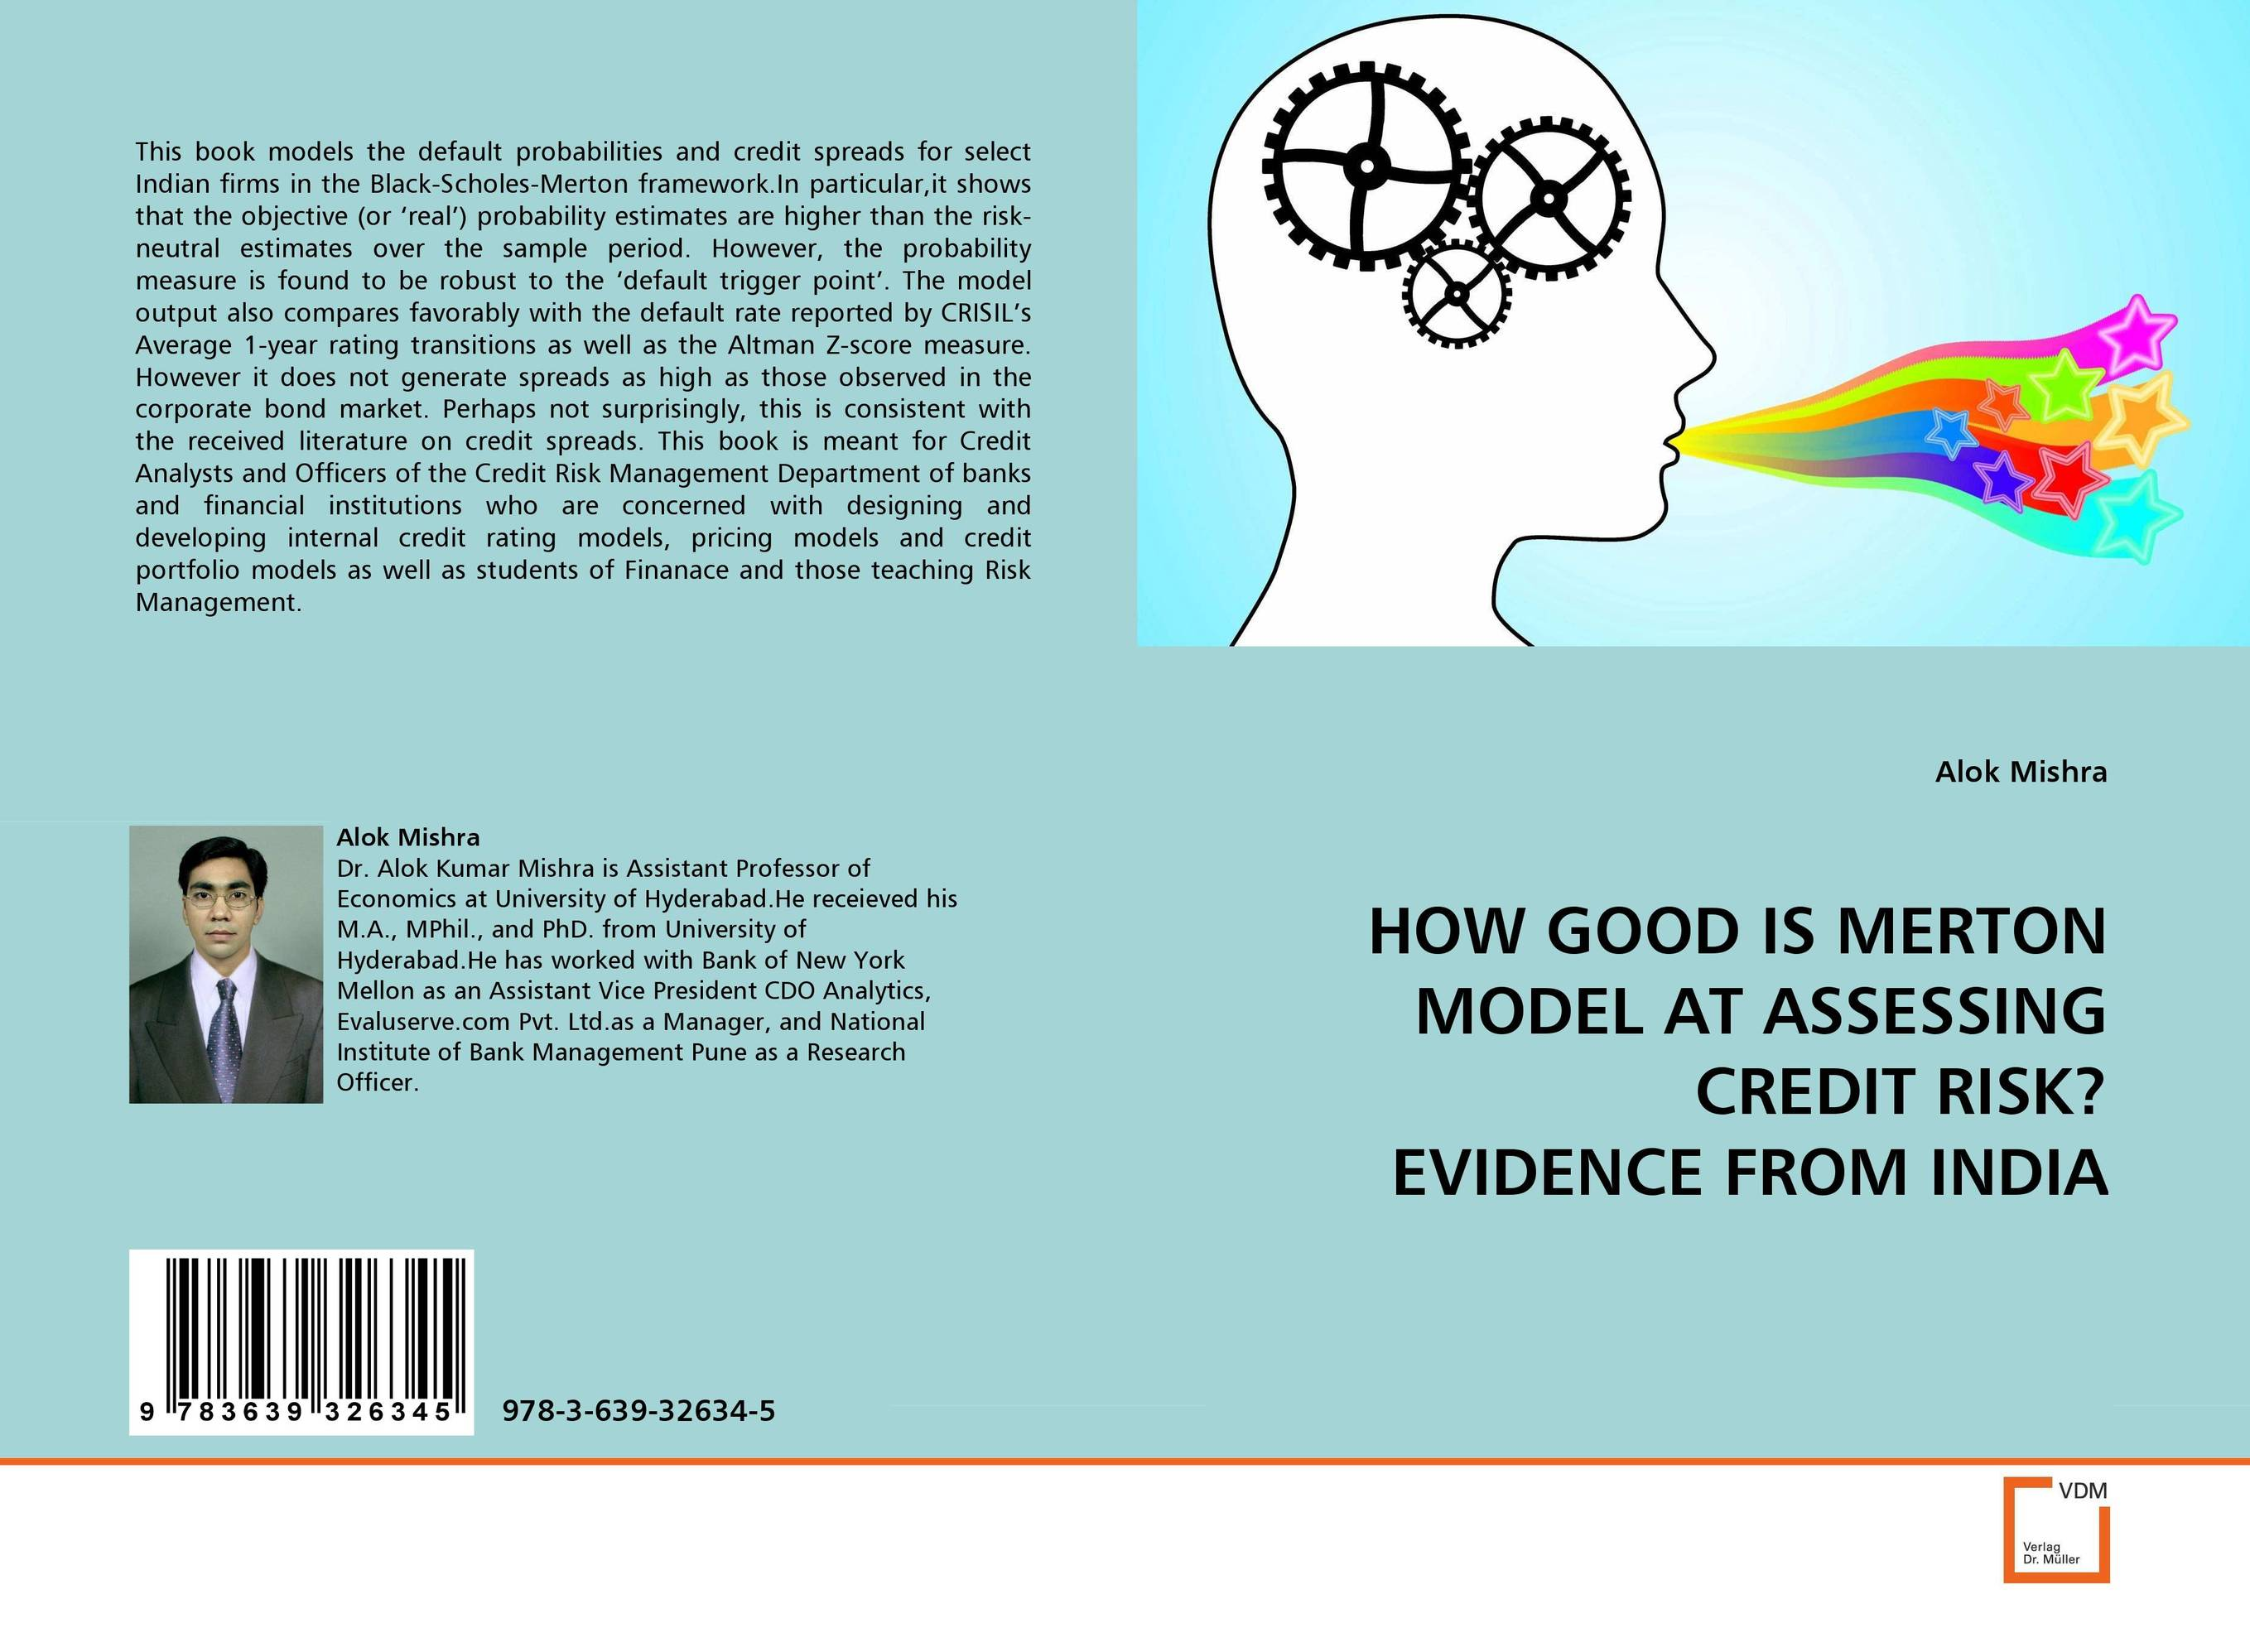 HOW GOOD IS MERTON MODEL AT ASSESSING CREDIT RISK? EVIDENCE FROM INDIA jahnavi ravula pawan kumar avadhanam and r k mishra credit and risk analysis by banks